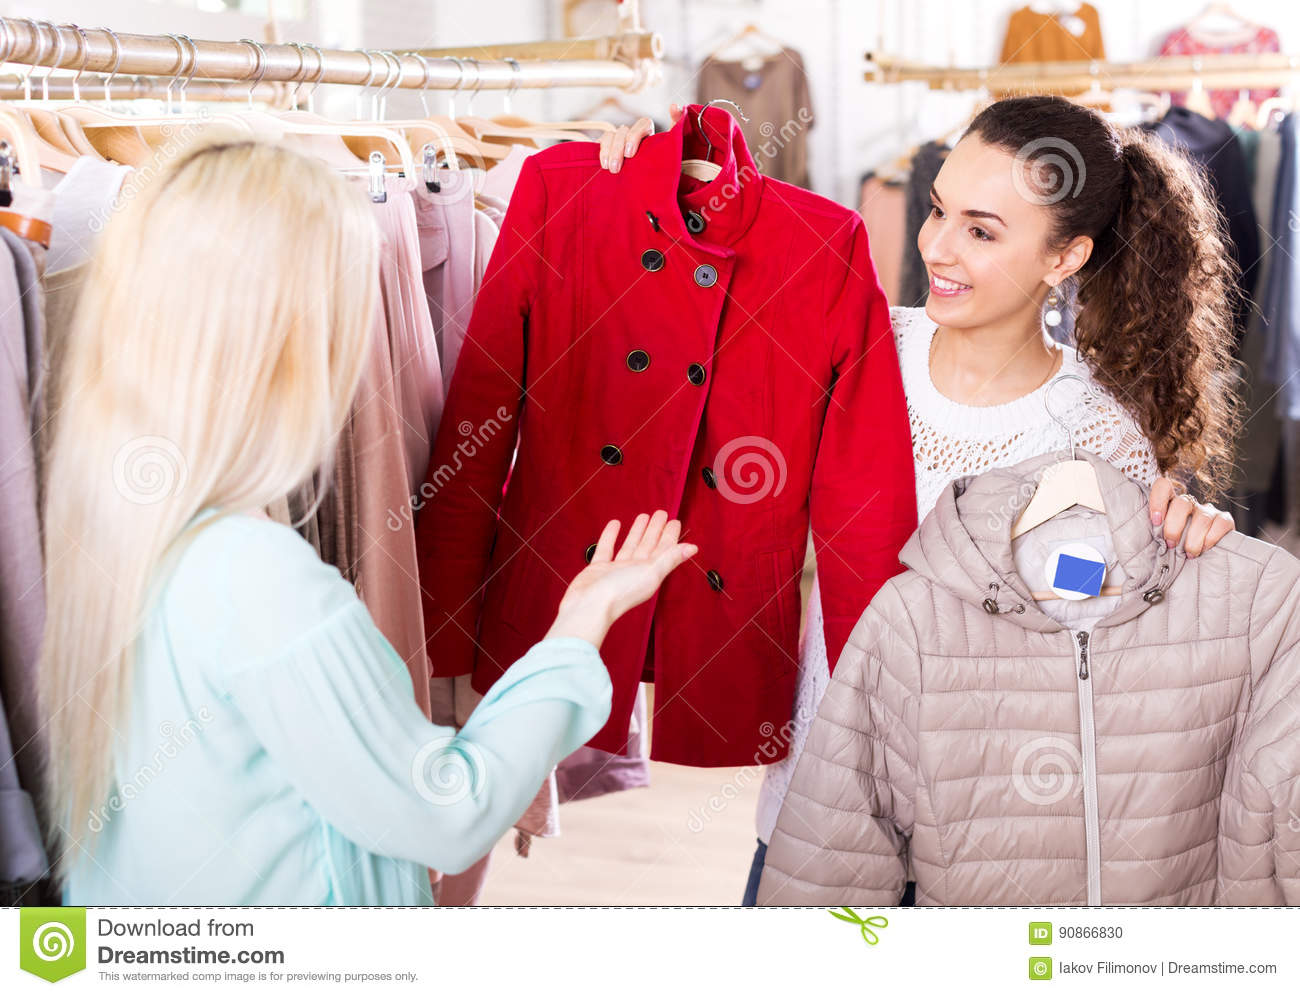 Female customers selecting coats and jackets